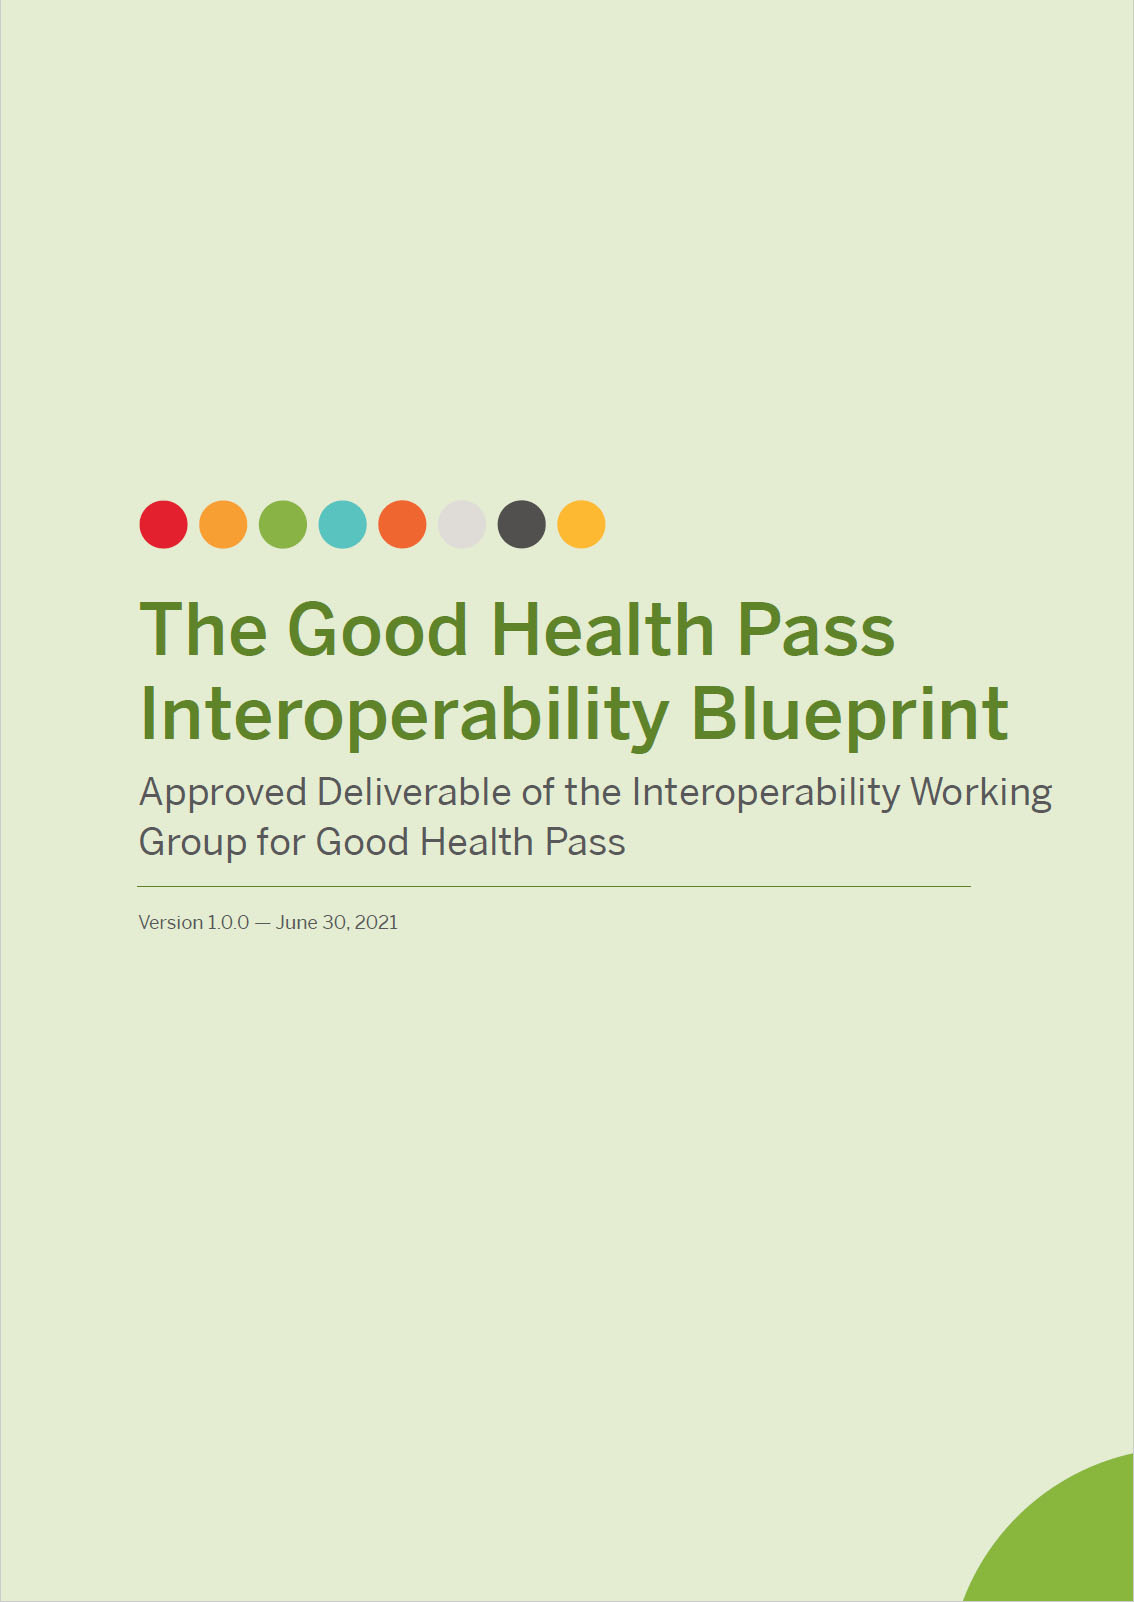 Cover of the Good Health Pass Collaborative's Interoperability Blueprint.